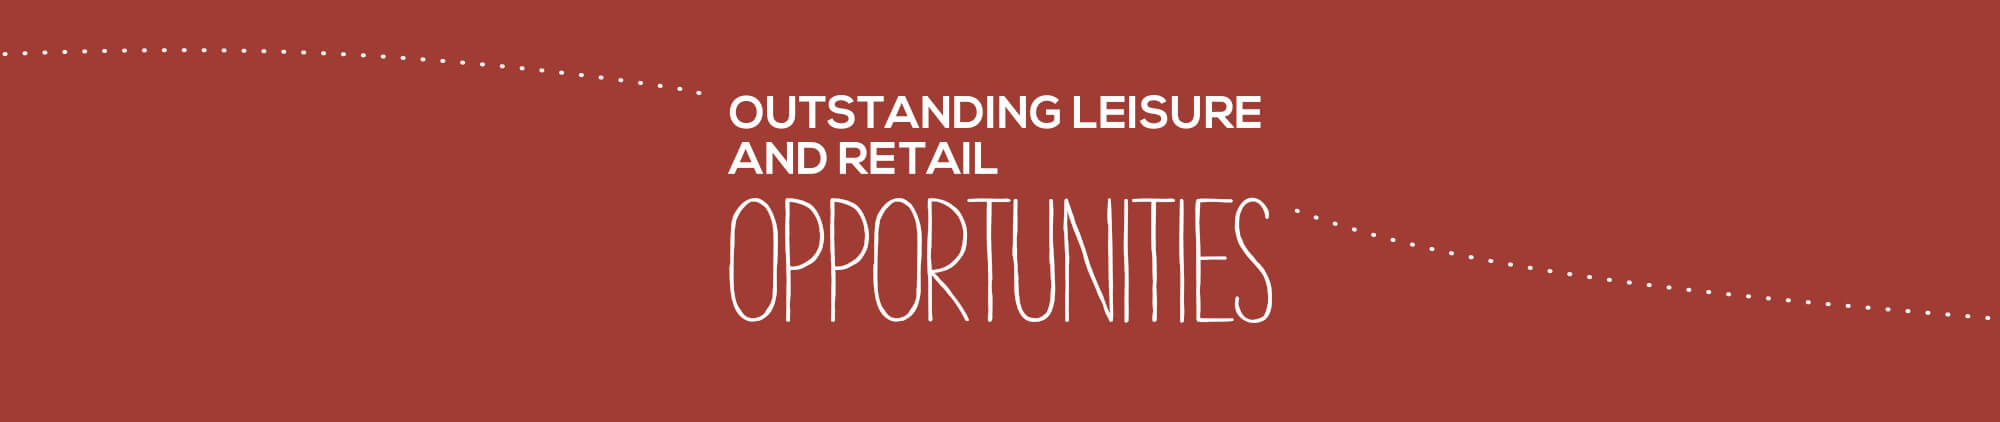 Outstanding leisure and retail opportunities at Millbay Plymouth.